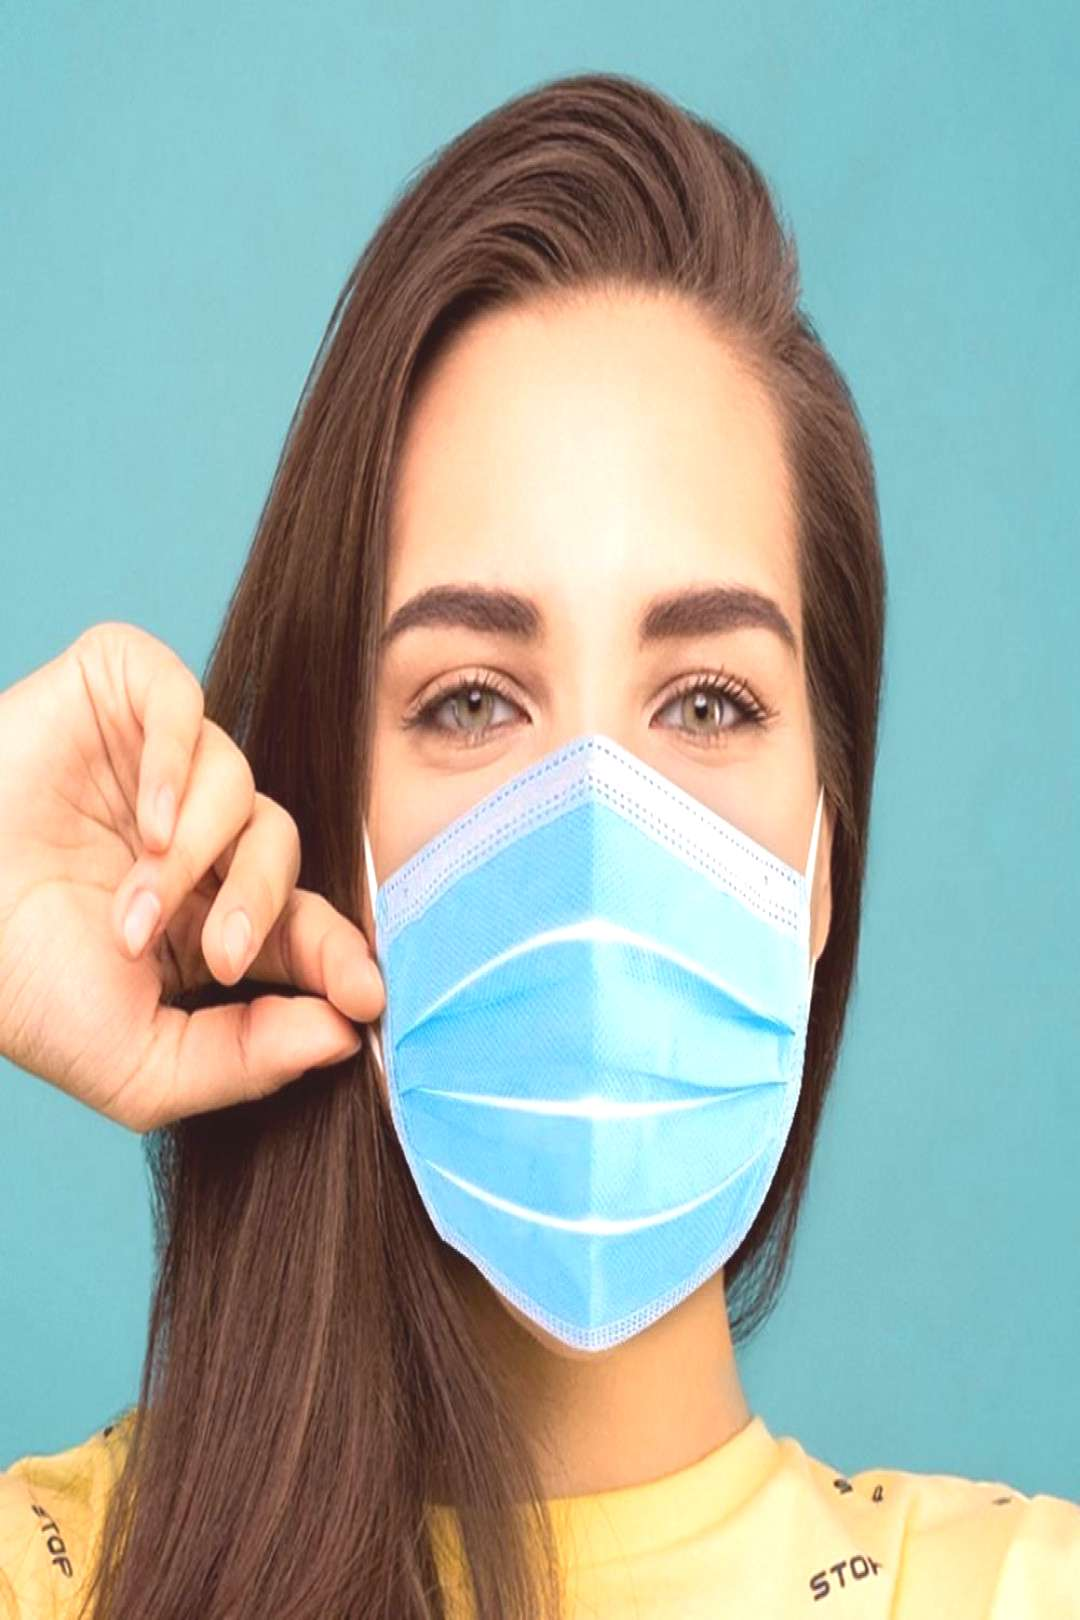 10-200 pcs 3 Layer Dust Mask Antibacterial protection Sterile Mask Dustproof Mask Facial Protective